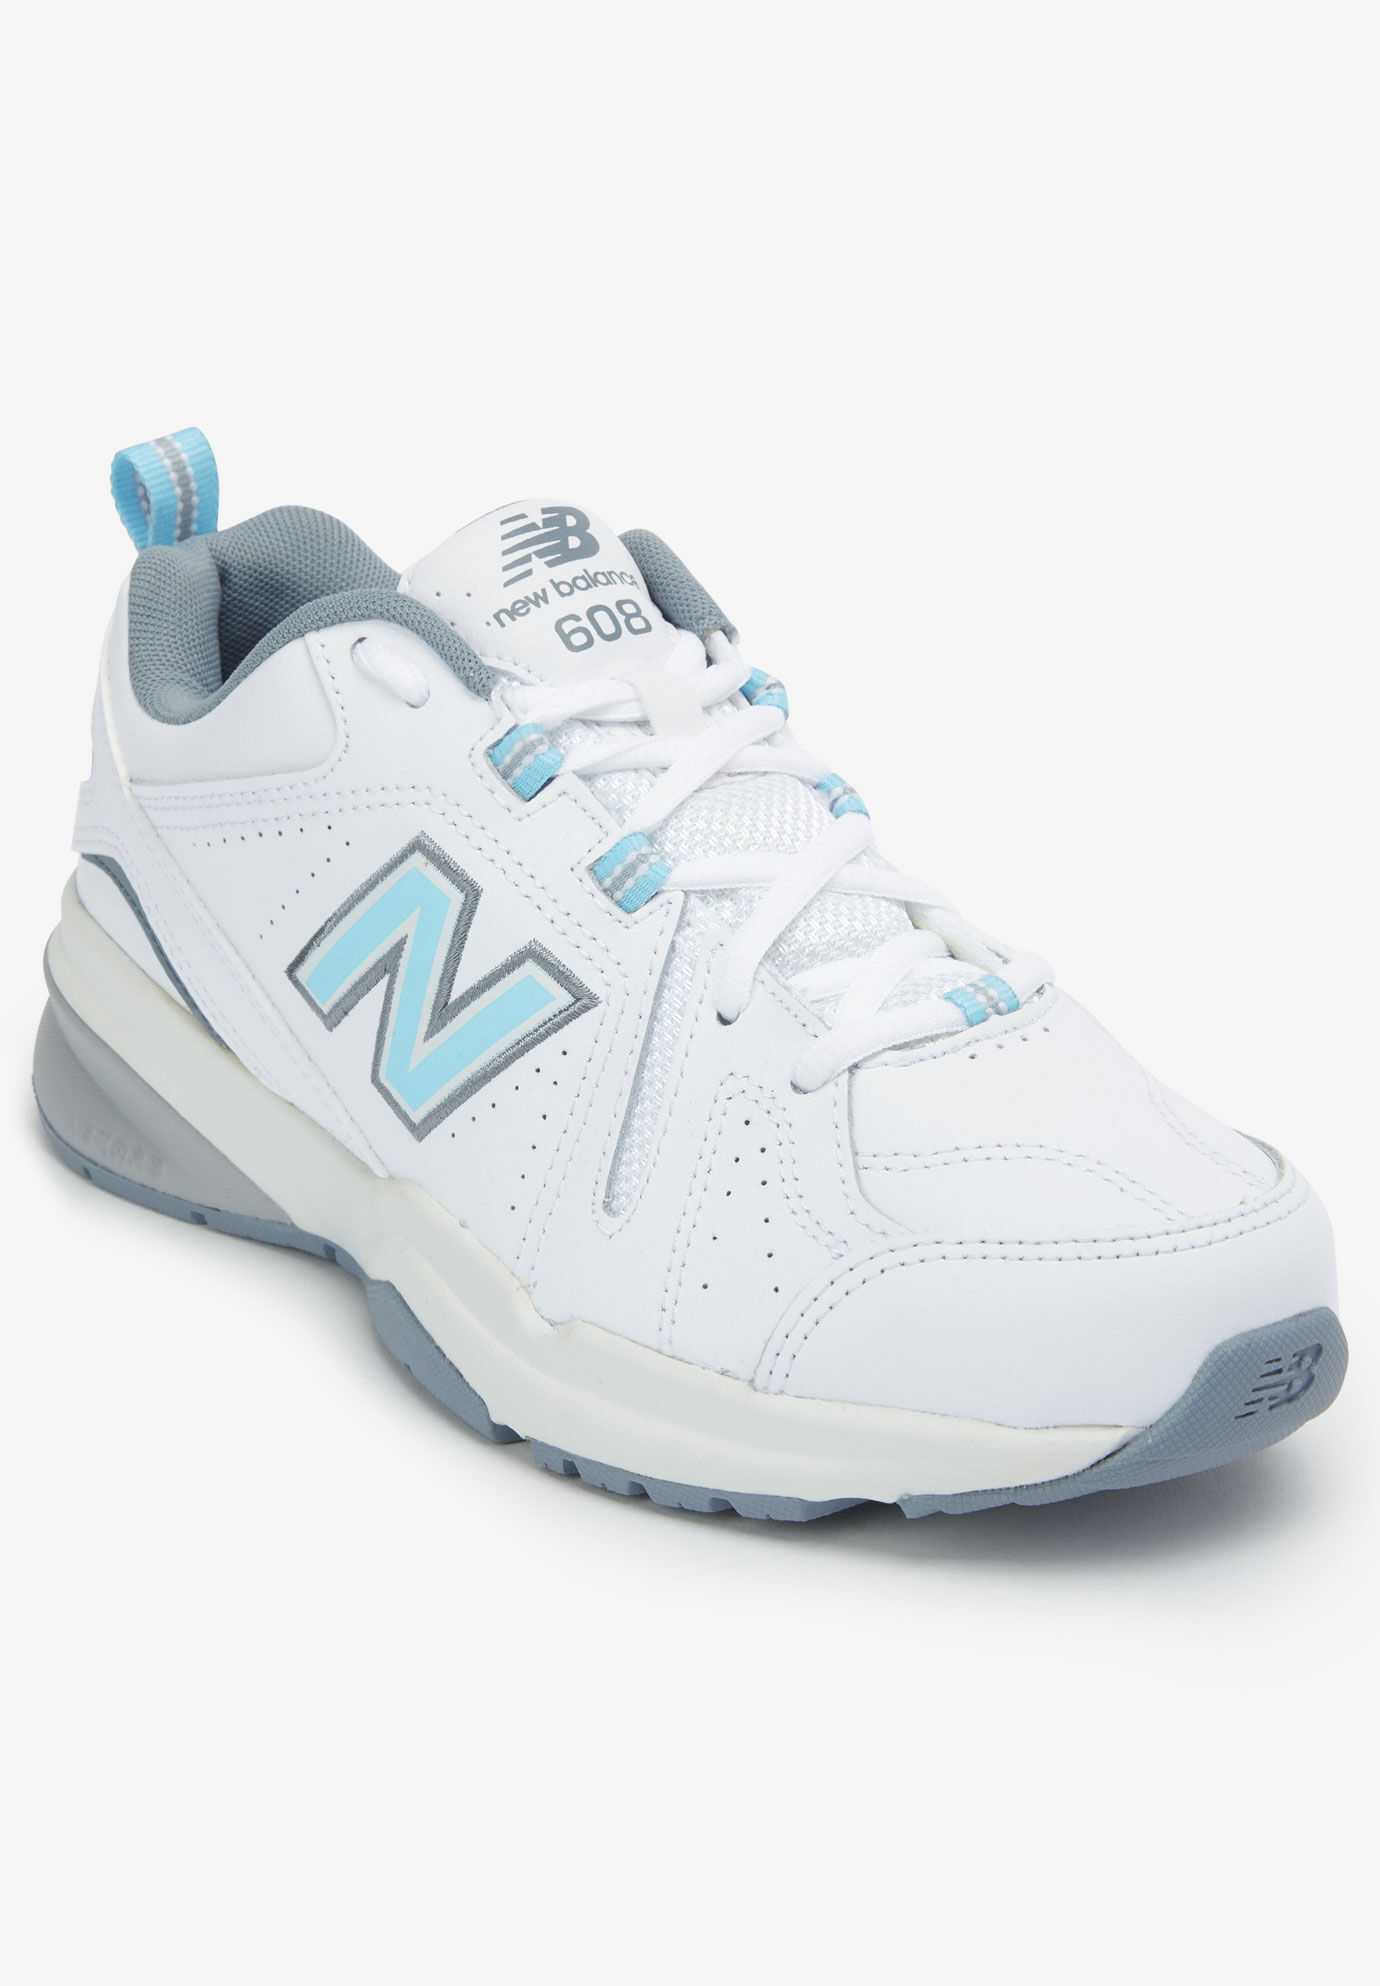 Women's Wide Width Shoes by New Balance